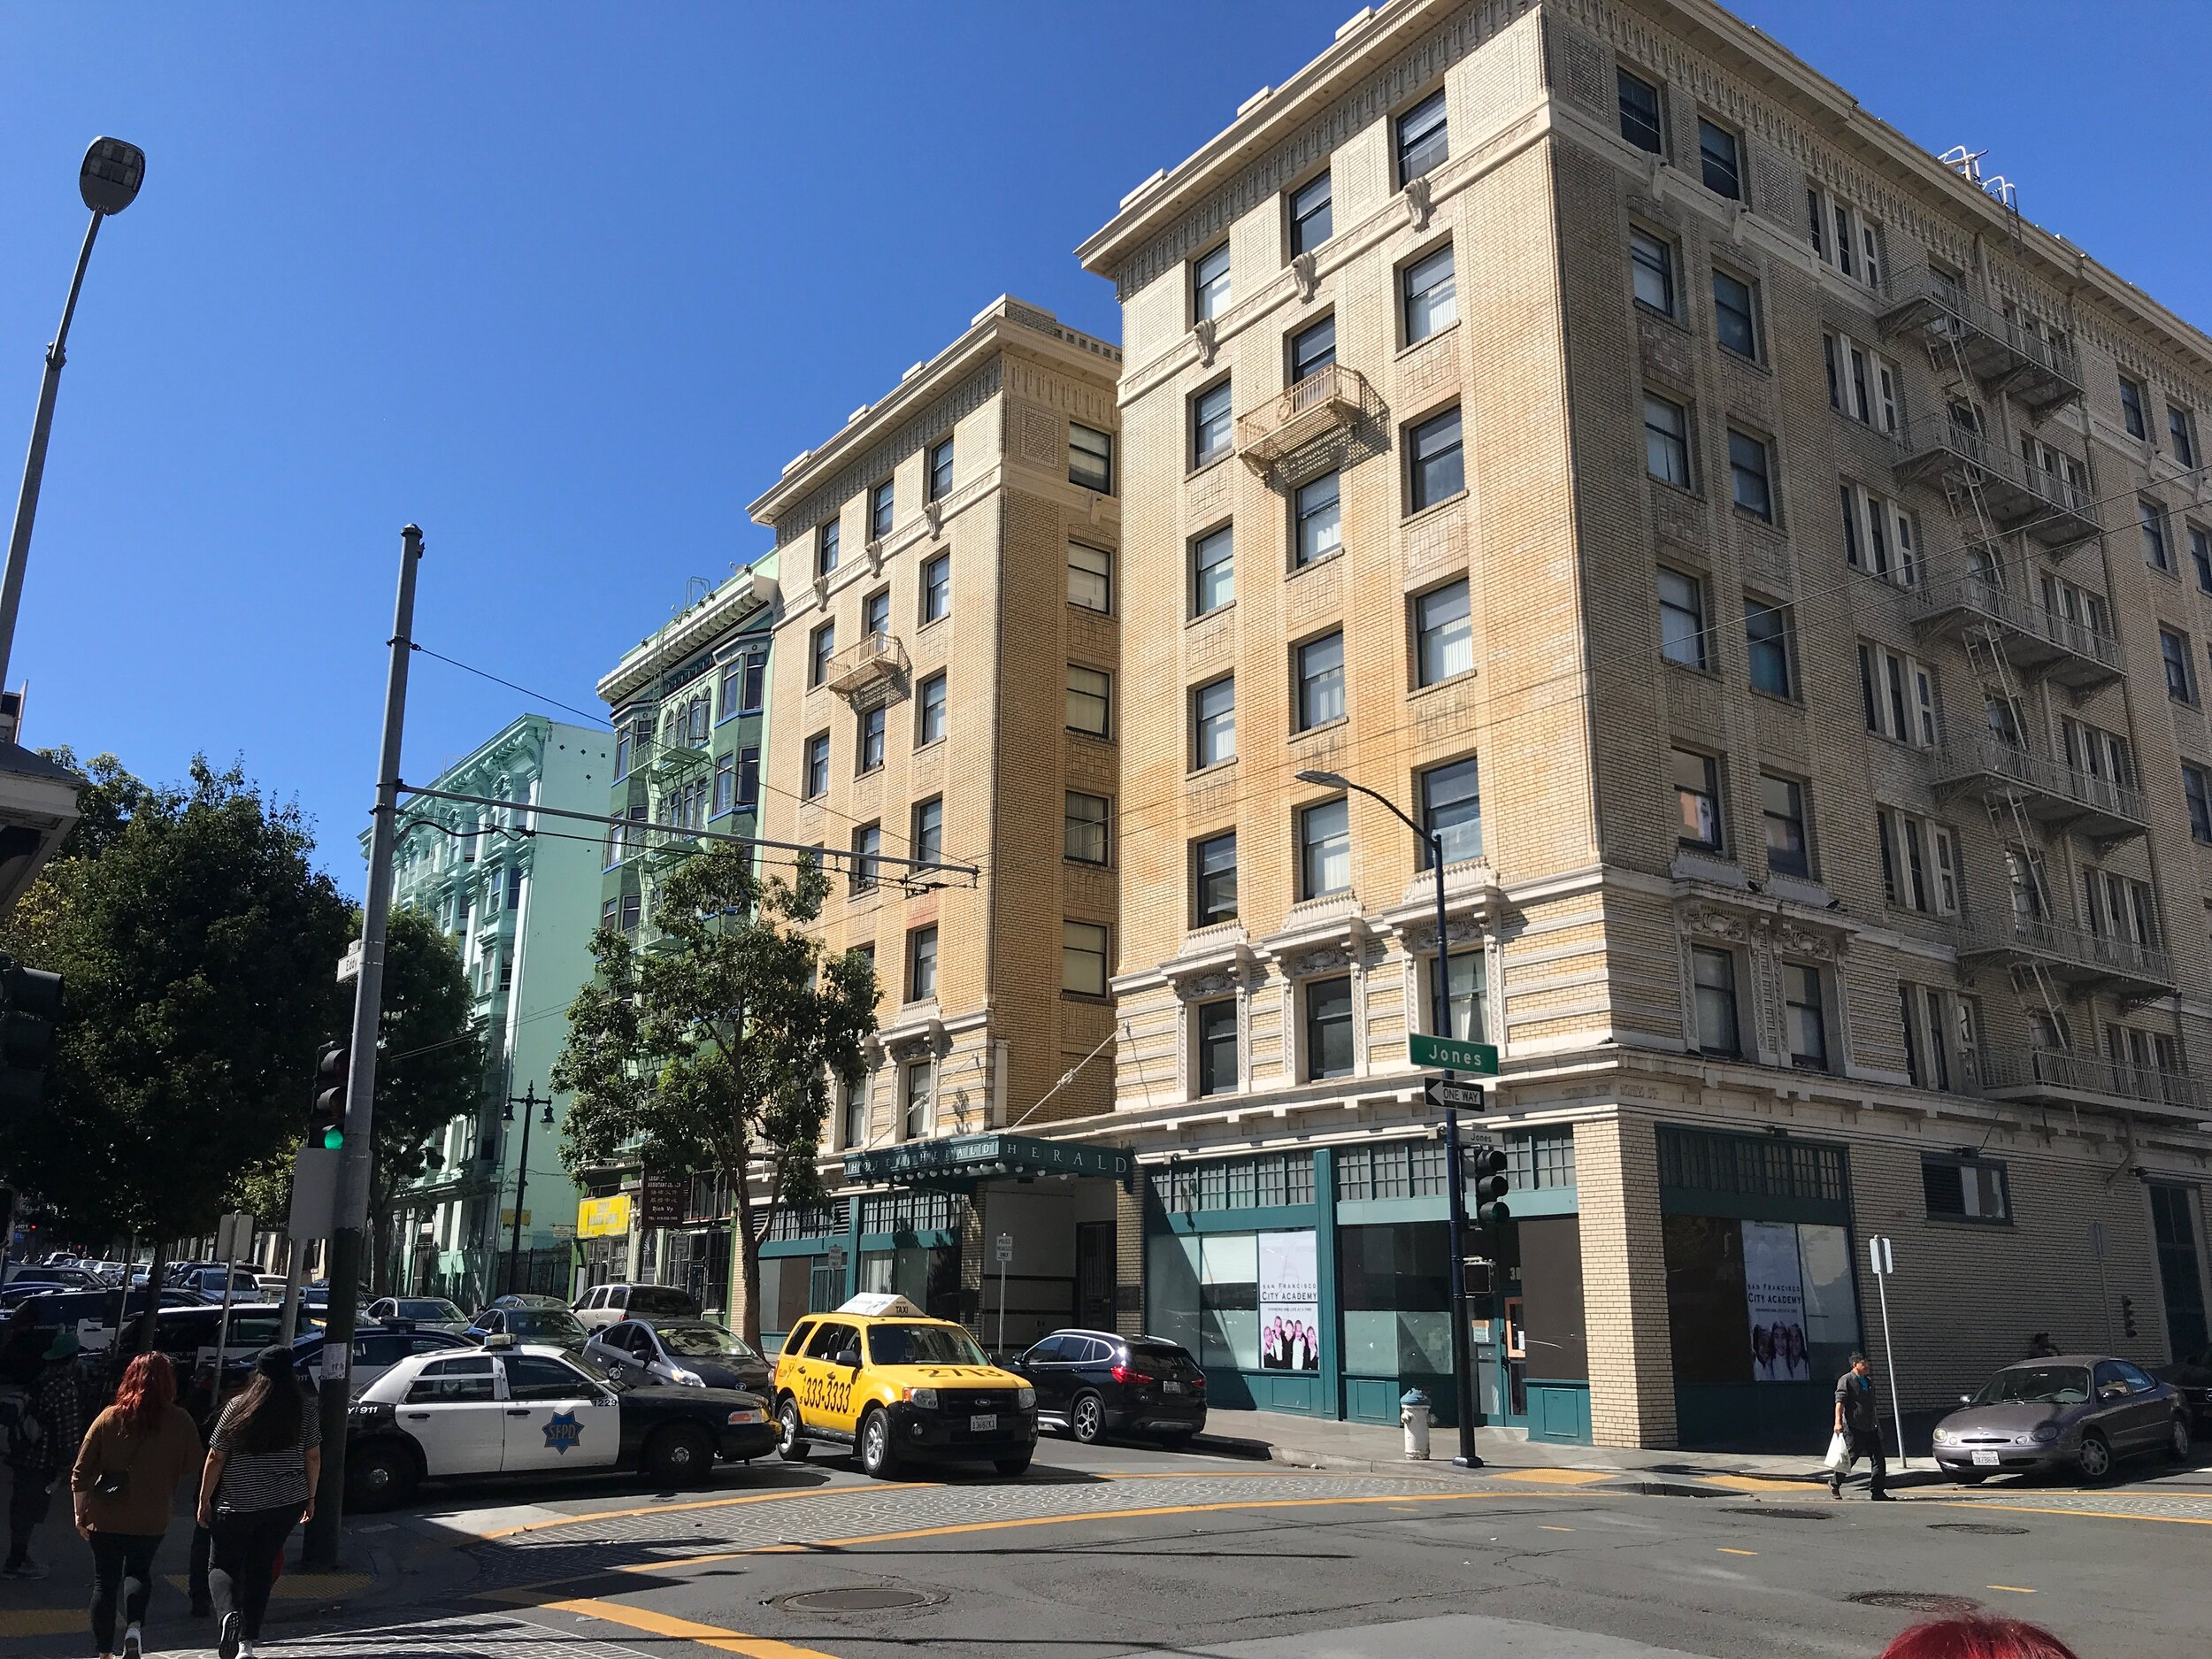 Rebuilt quickly after the 1906 earthquake and fire, the Tenderloin was suited to the development of residential hotels, a housing type that defined the neighborhood. More than 400 Tenderloin buildings are protected as historical structures.